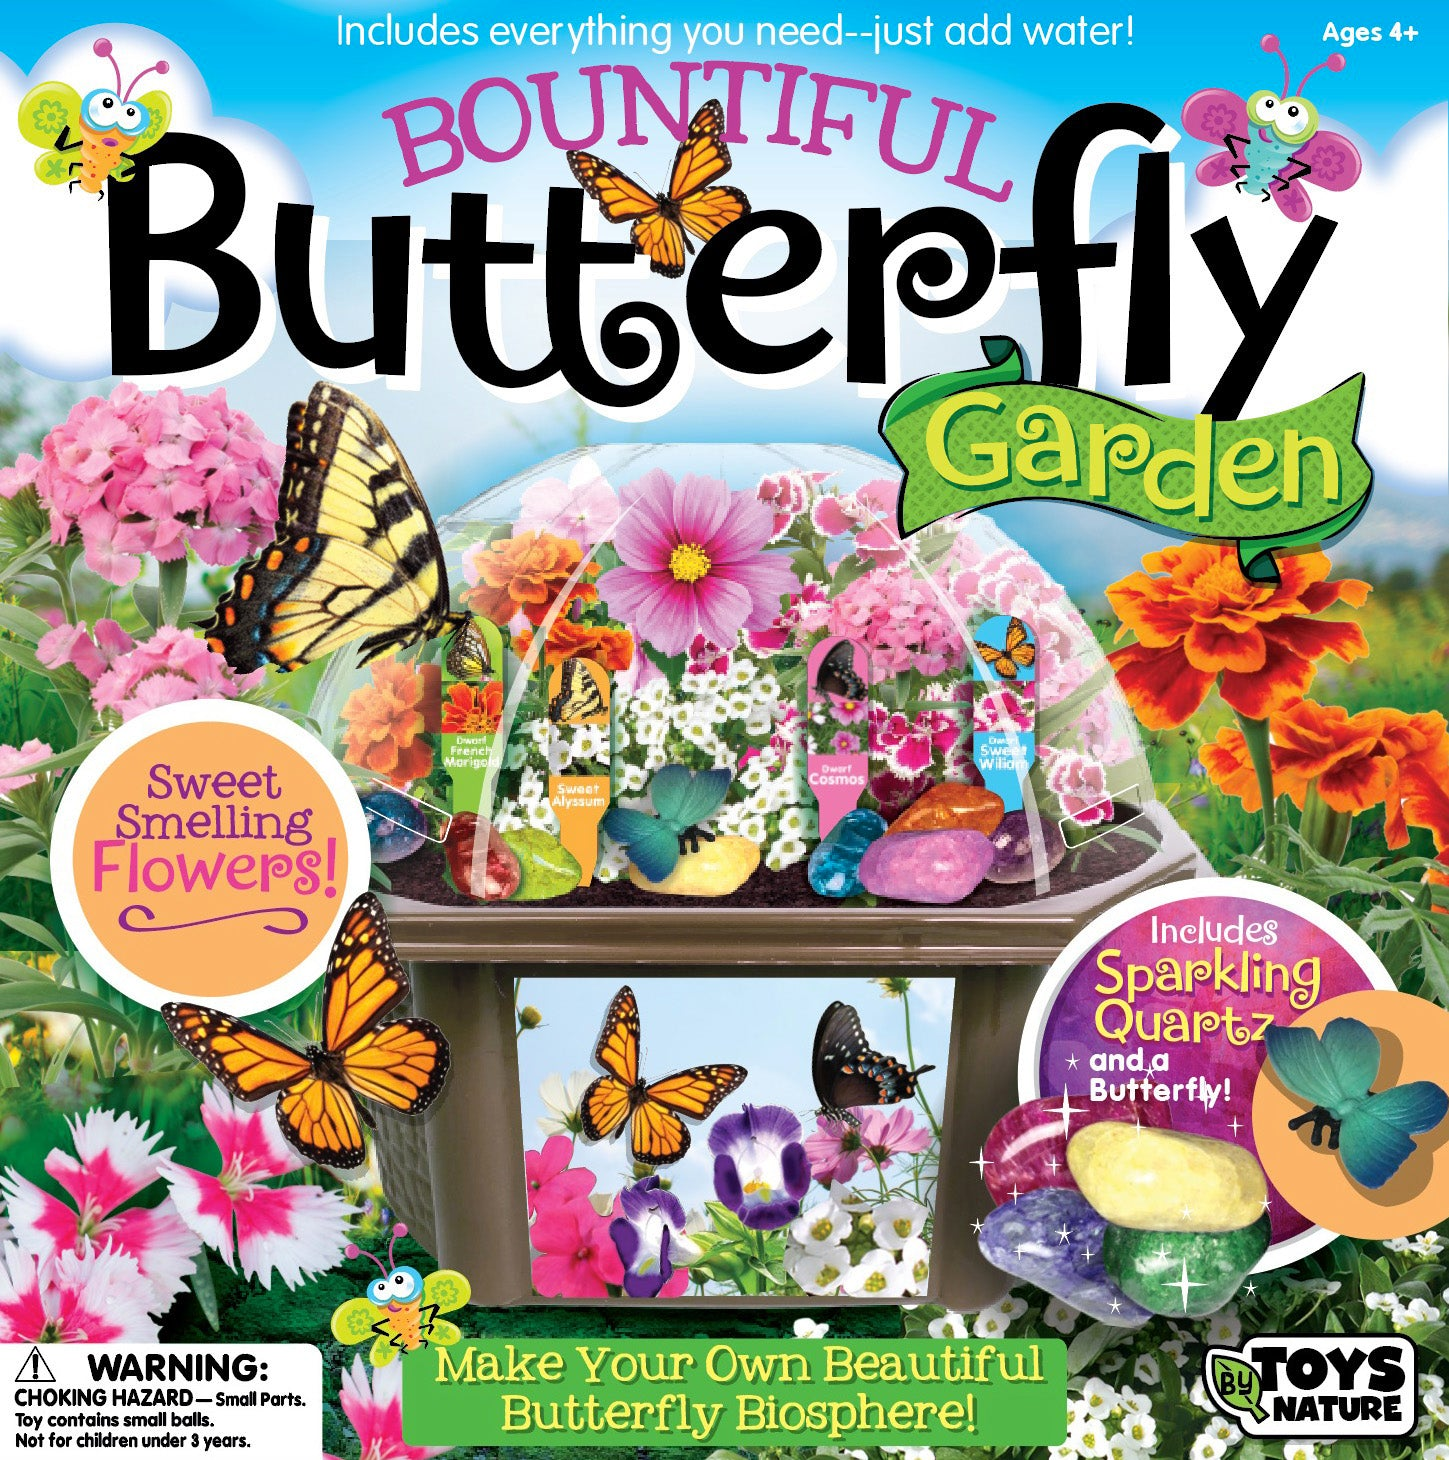 Bountiful Butterfly Garden